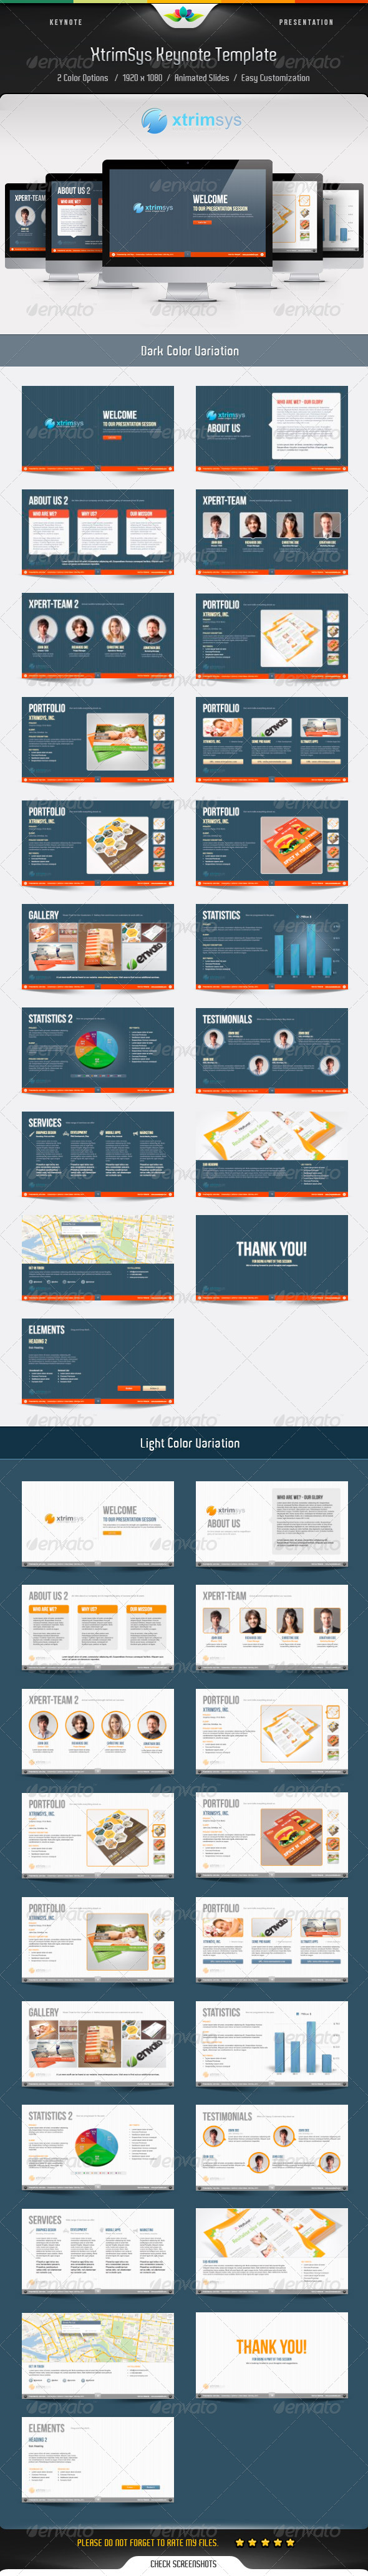 GraphicRiver Xtrimsys Keynote Template 4715335